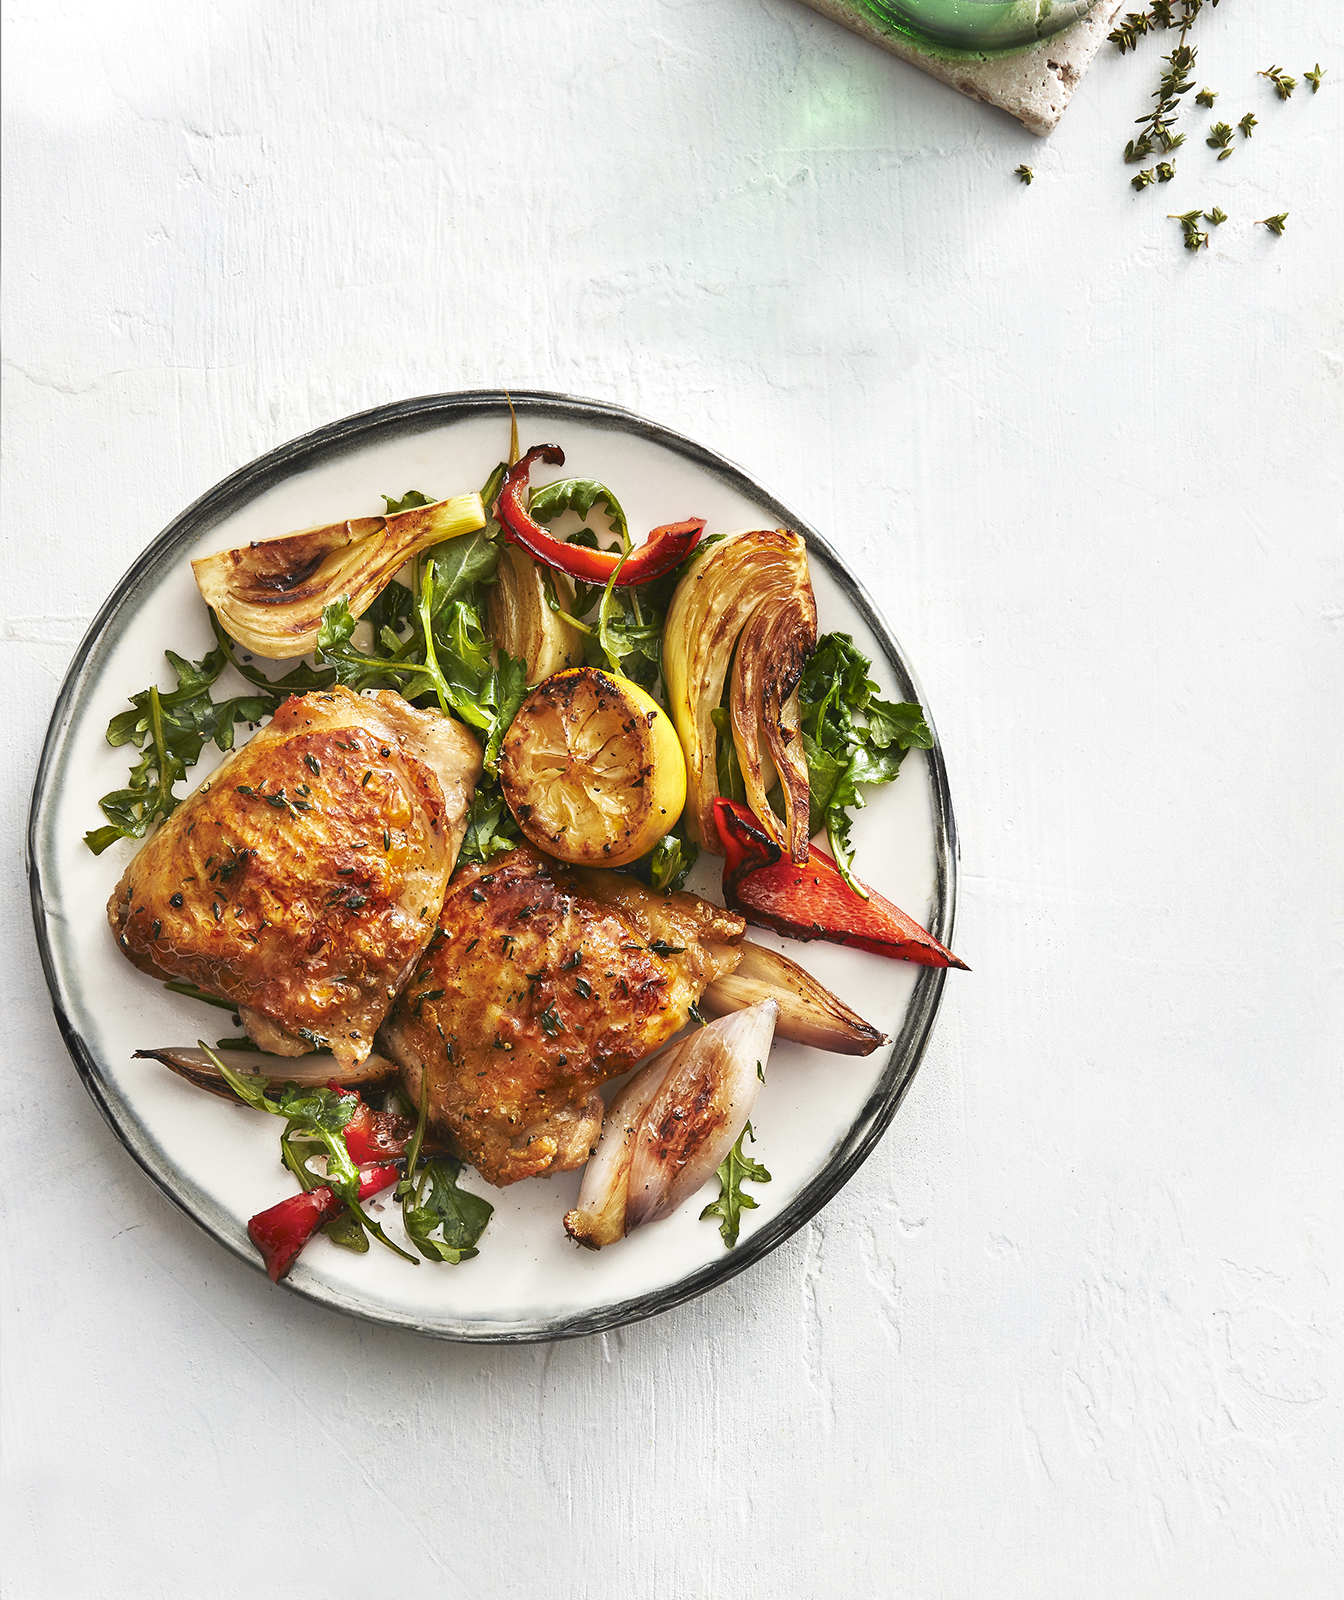 5 Keto Chicken Recipes To Get You Cooking Real Simple